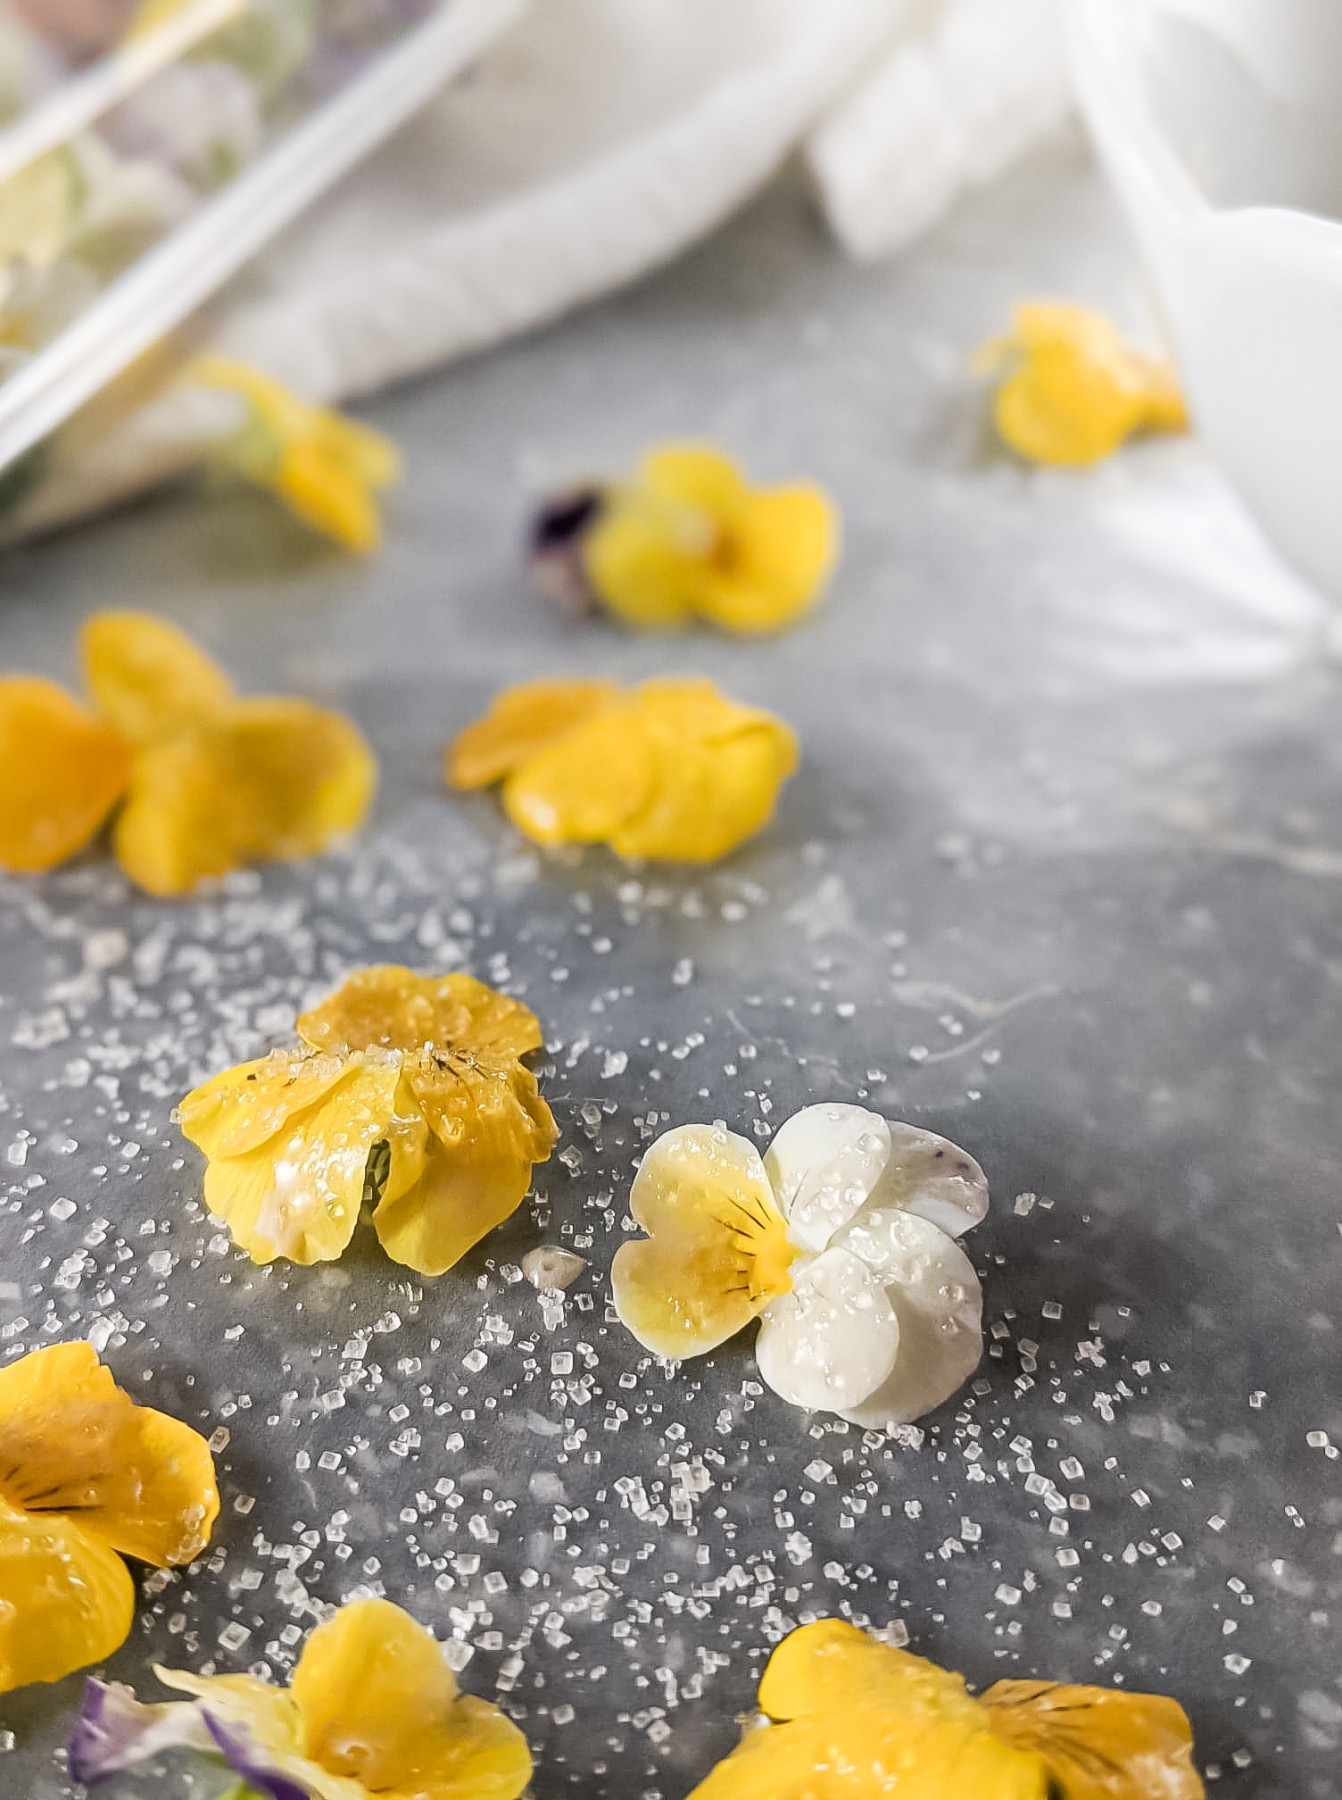 dried edible candied flowers recipe pop shop america